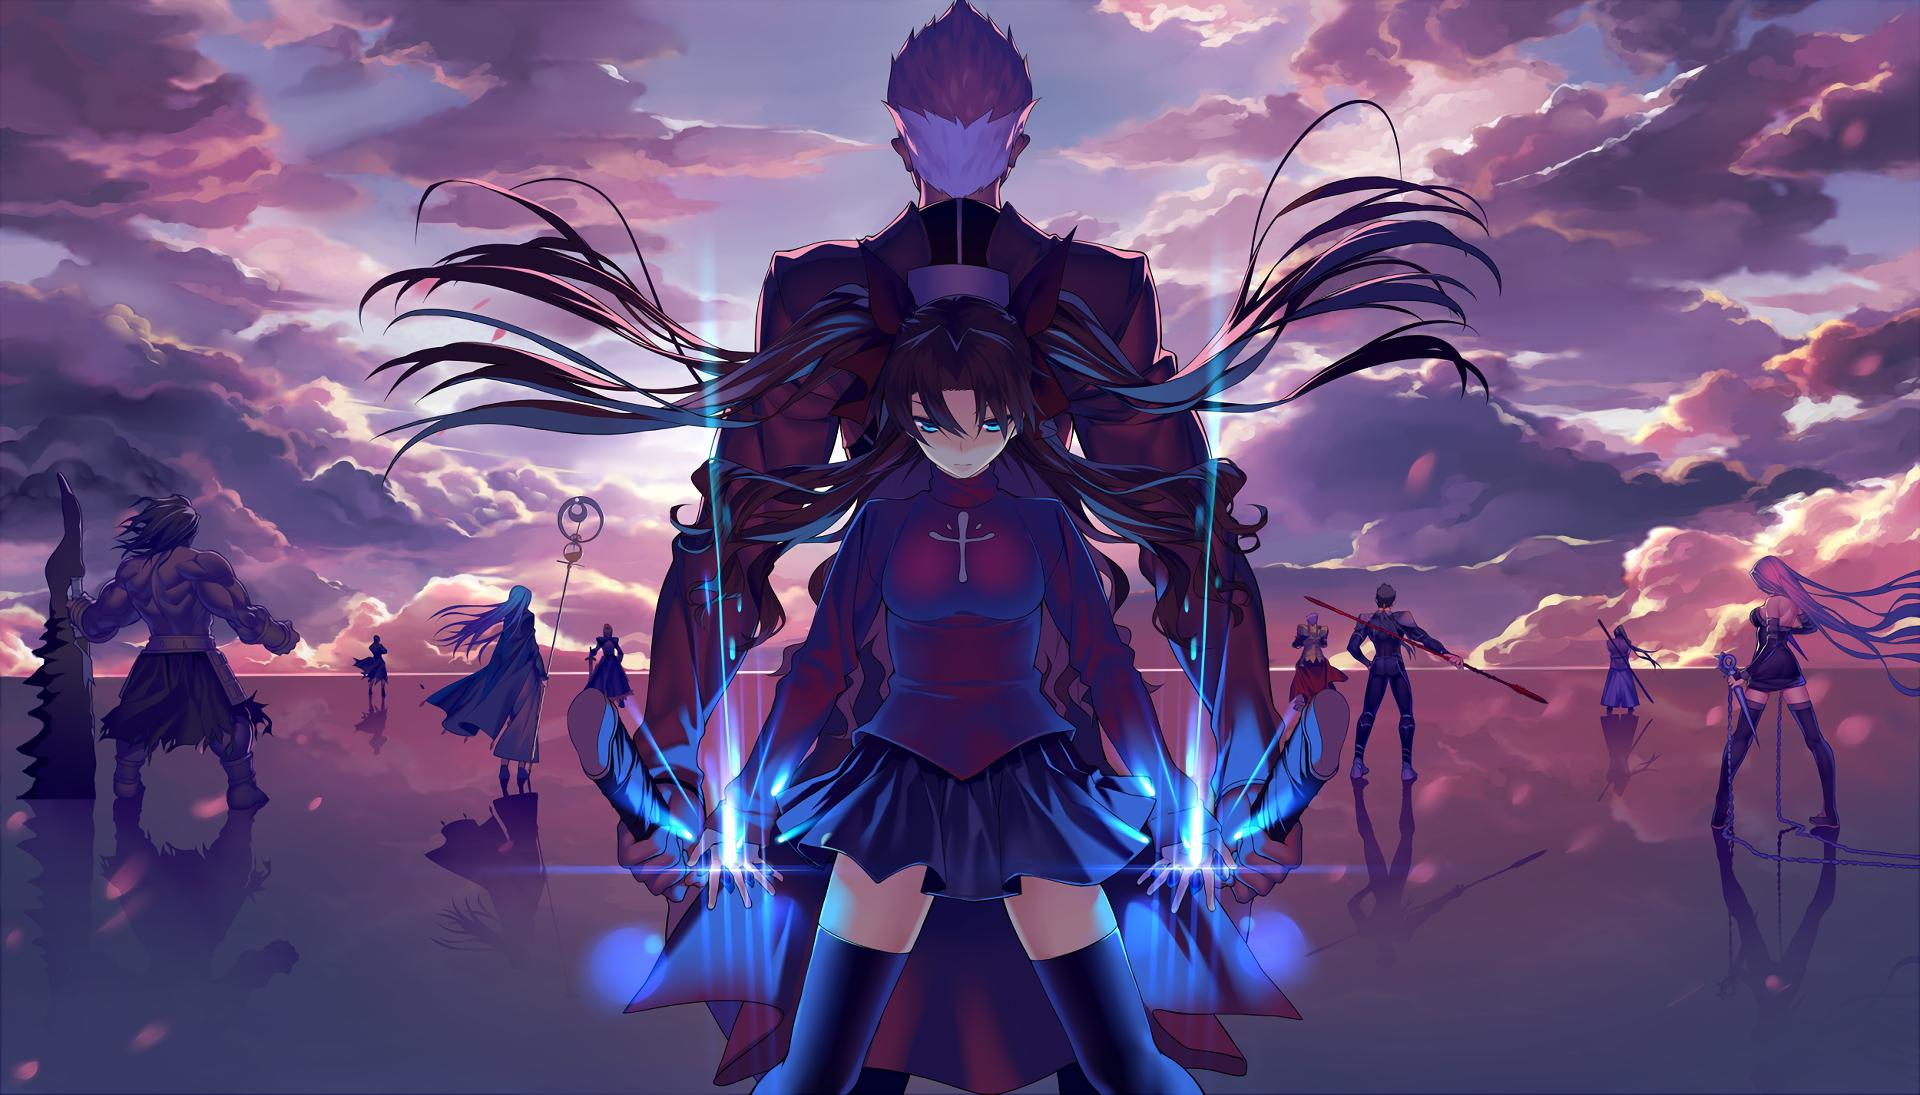 Fate/stay night the Movie: Heaven's Feel - II. Lost Butterfly